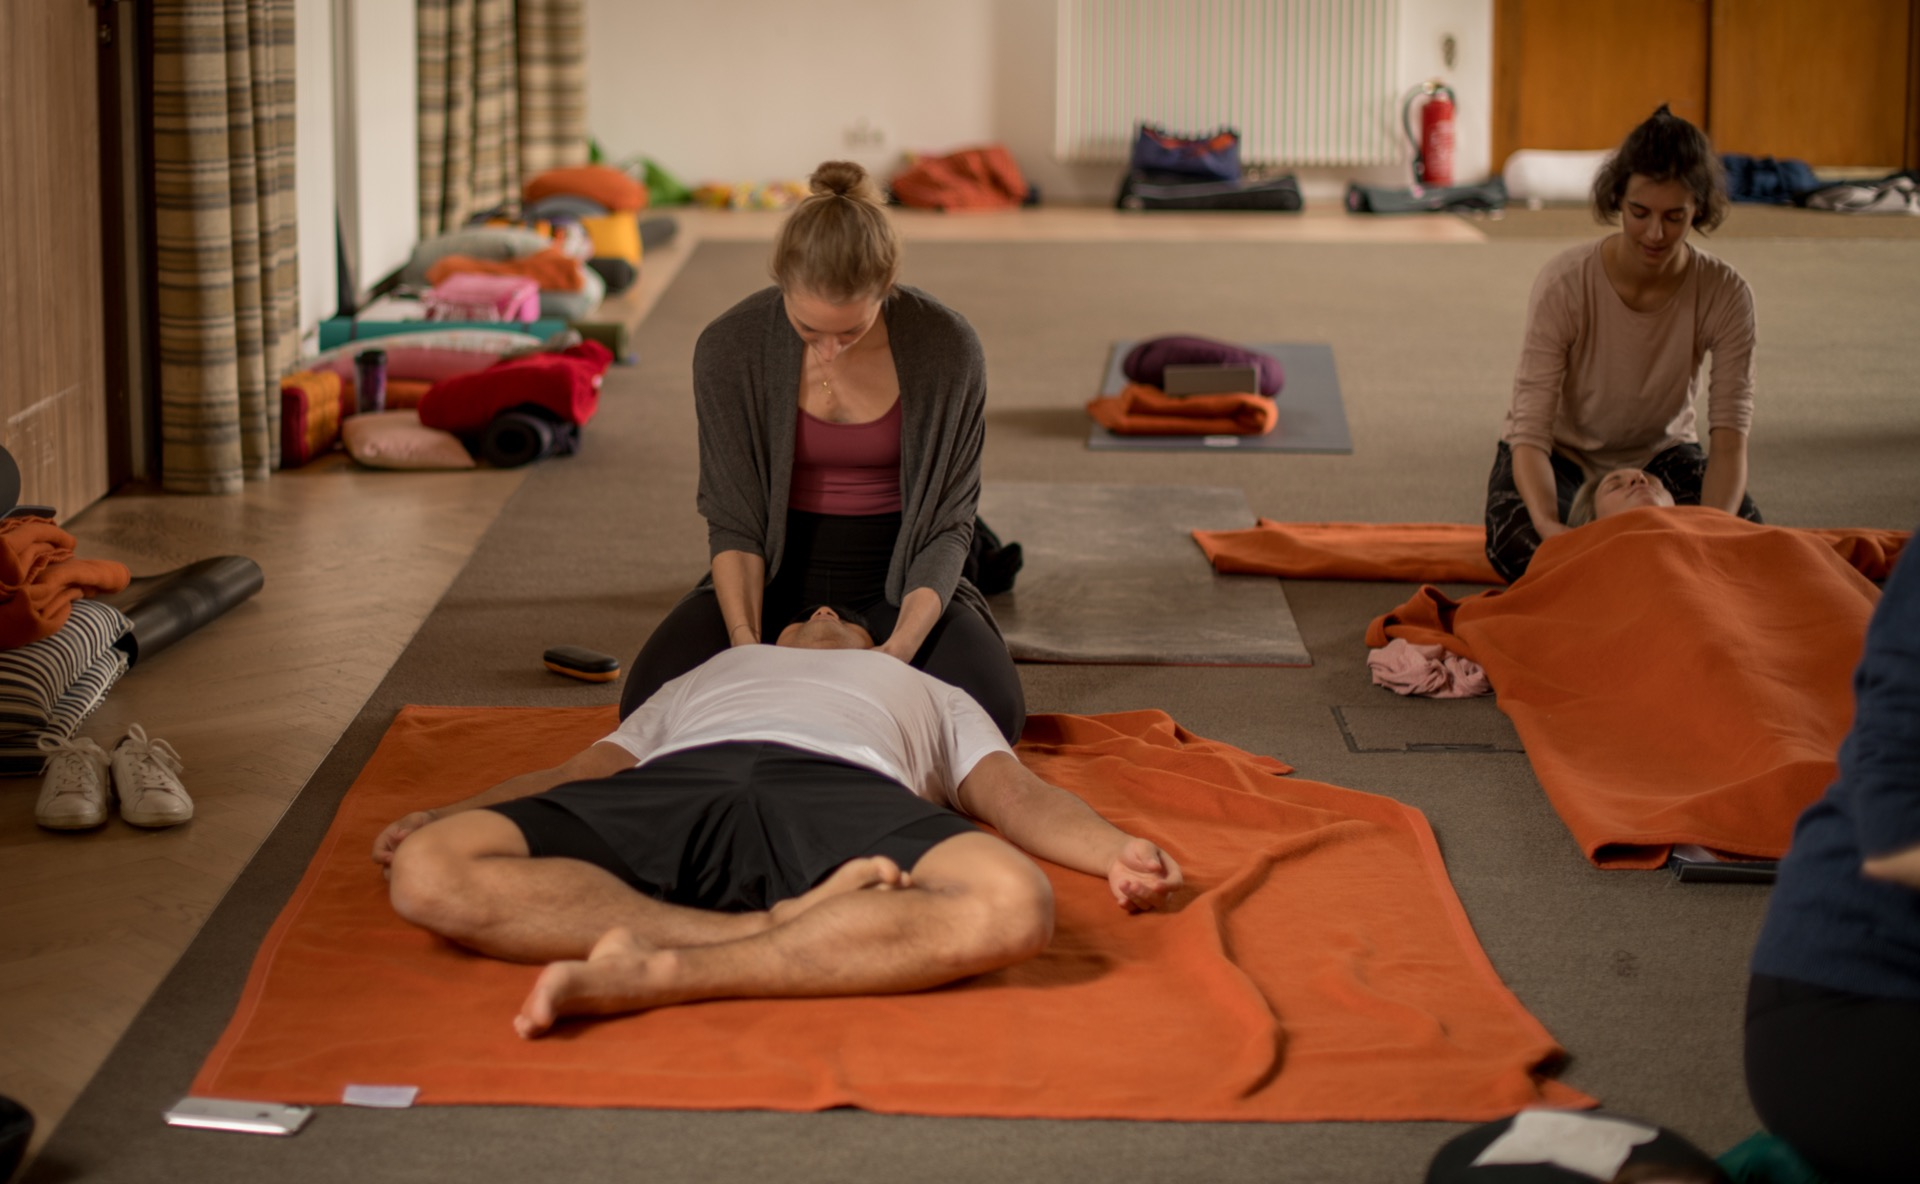 A-New-Beginning-Hie-Kim-Yoga-Retreat-Alina-Matis-Photography-094 - Hie Kim Yoga - Yoga Retreat - Yoga Workshops und Reisen